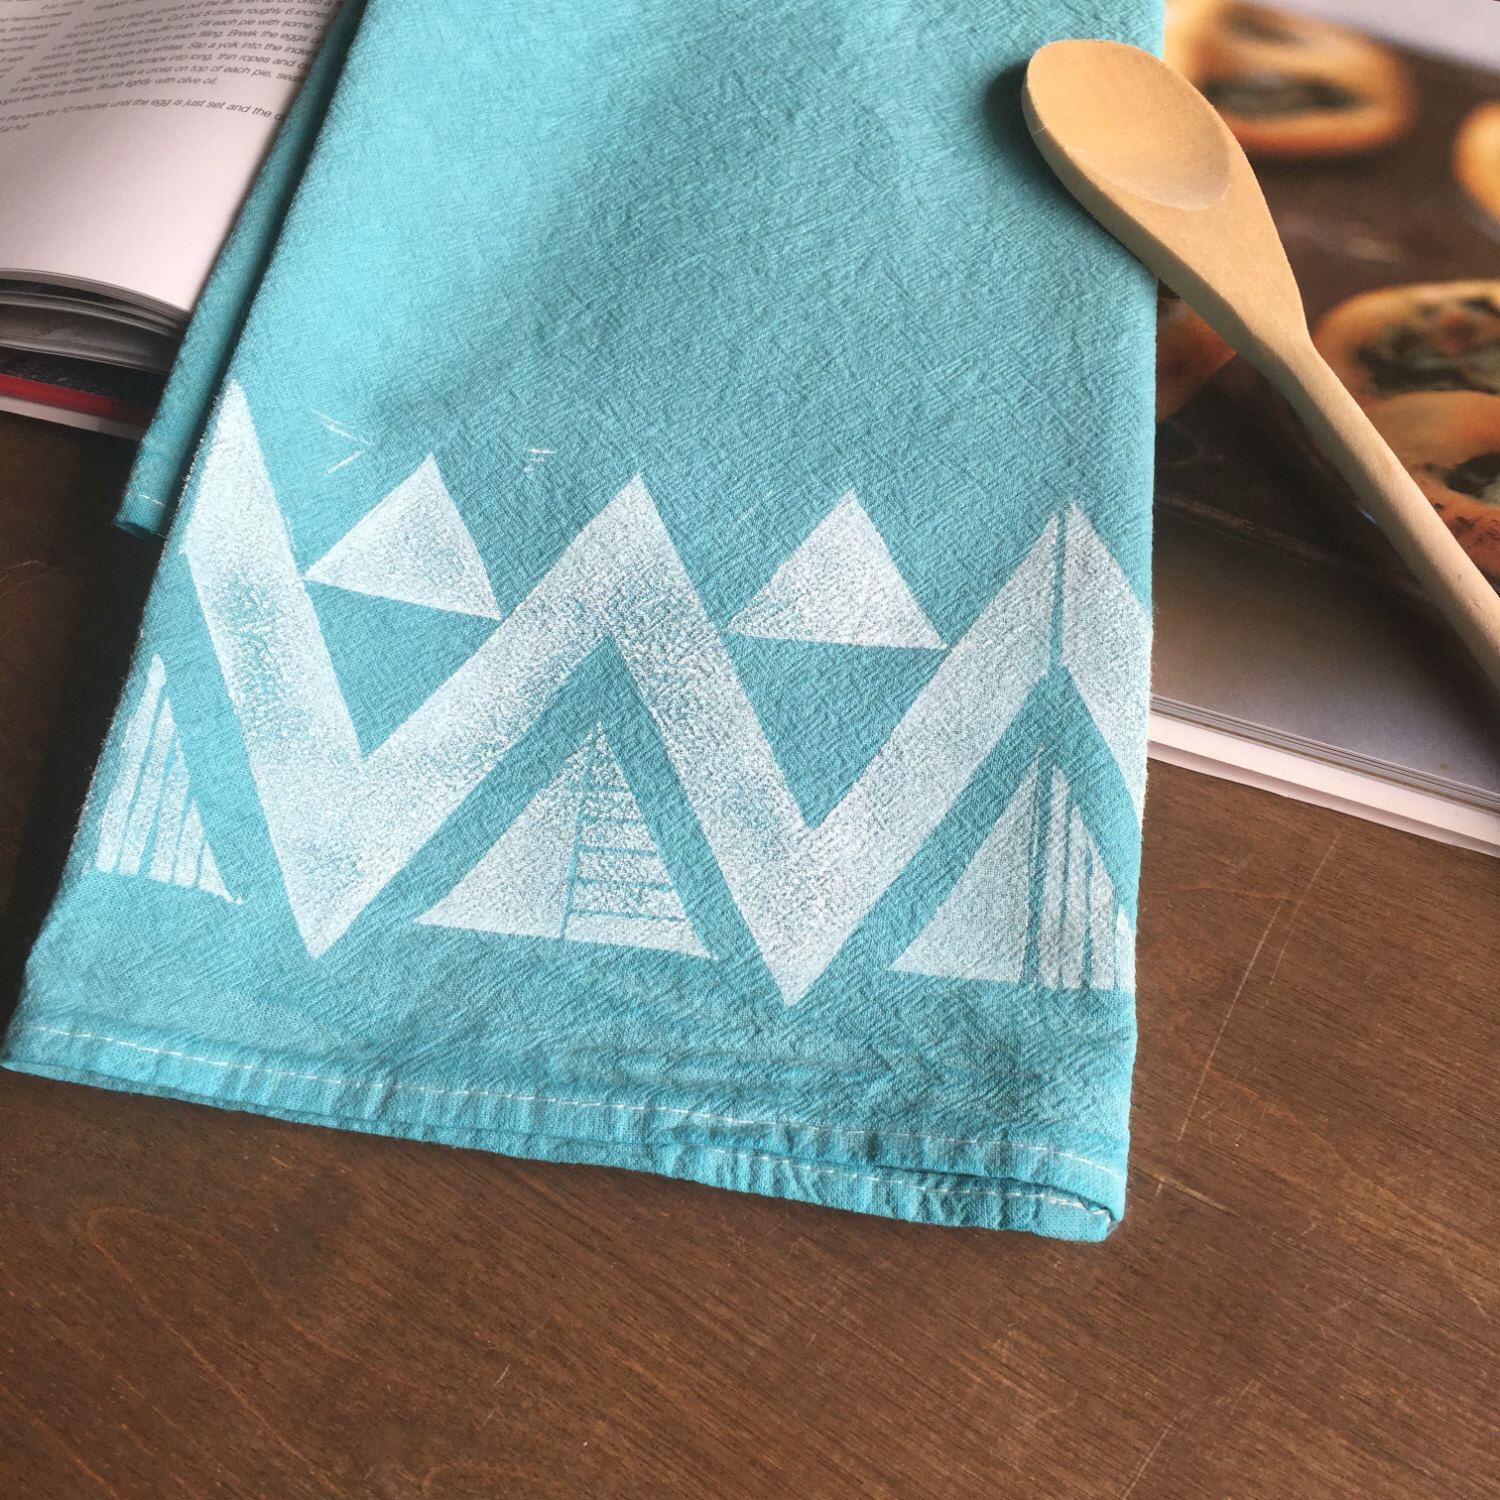 A hand-printed and hand-dyed flour sack towel from my Etsy shop ...